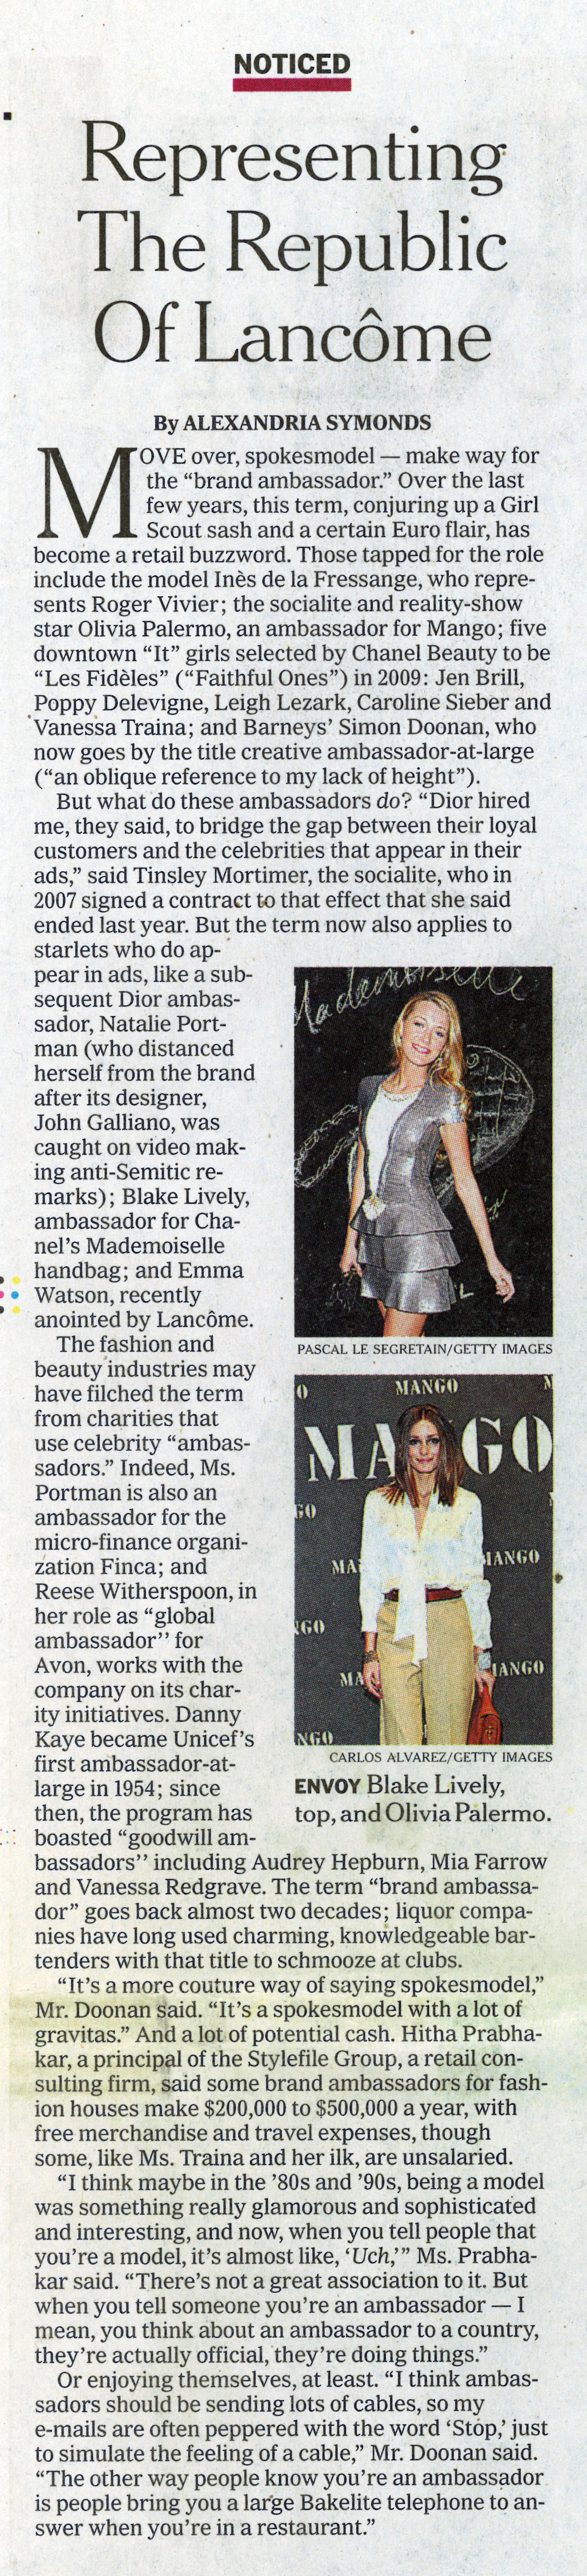 "Snippet from the New York Times, discussing model ambassadors. Copy of Hitha Herzog's comments reads: Hitha Prabhakar, a principal of the Stylefile Group, a retail consulting firm, said some brand ambassadors for fashion houses make $200,000 to $500,000 a year, with free merchandise and travel expenses, though some, like Ms. Traina and her ilk, are unsalaried. ""I think maybe in the '80s and '90s, being a model was really glamorous and sophisticated and interesting and now when you tell people you are a model, it's almost like 'uch.' Ms. Prabhakar said. There is no great association to it. But when you tell someone you are an ambassador, I mean, you think of an ambassador to a country, they're actually official, they're doing things."""